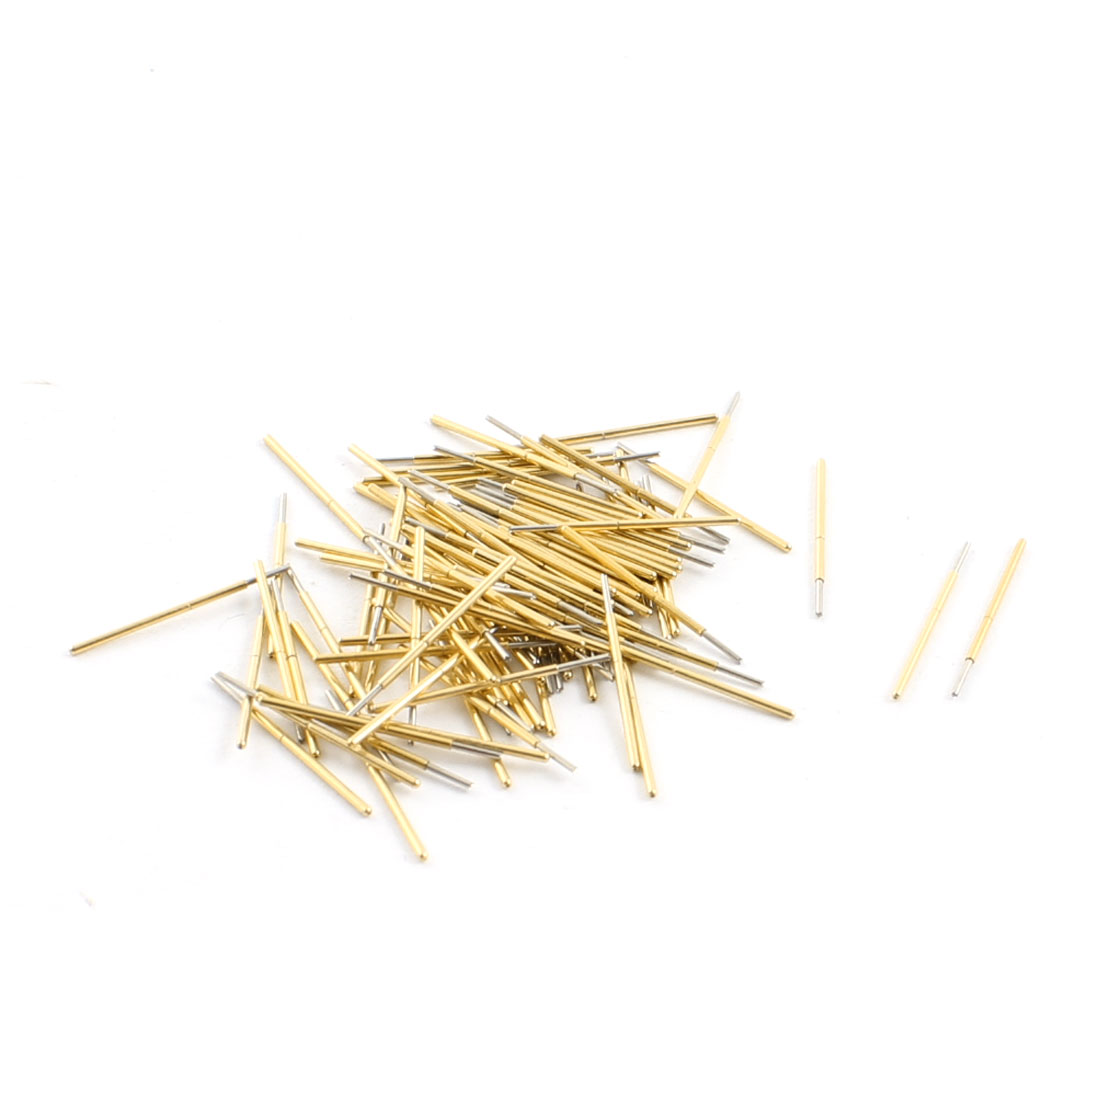 100Pcs Spear Tip Mini Gold Tone Metal Spring Test Pin Probe 0.46mm Dia 16.5mm Length